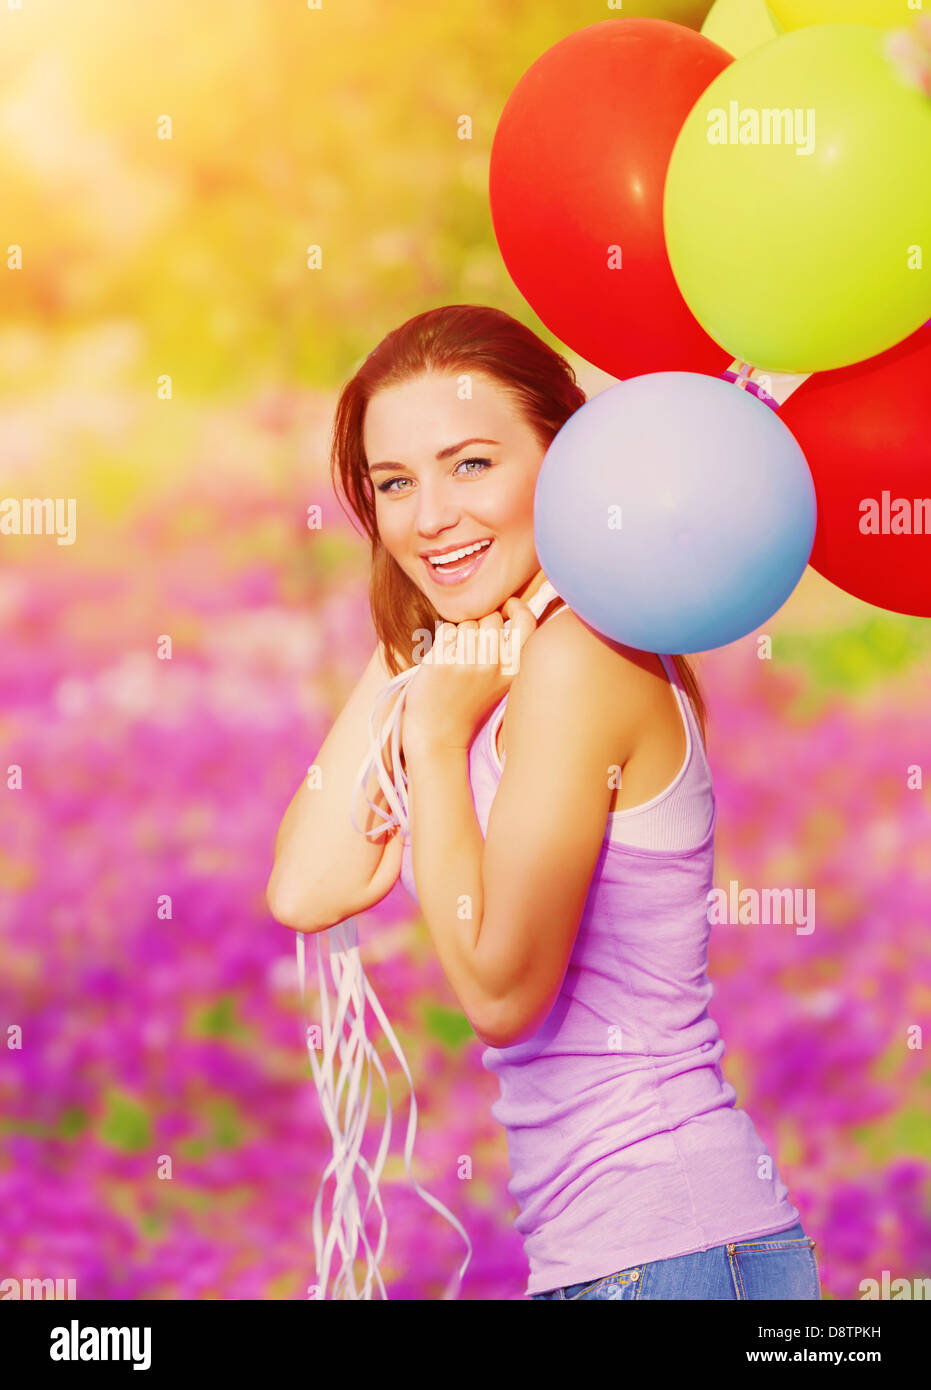 Cute cheerful female having fun with bunch of colorful balloons in spring garden, birthday celebration, happiness - Stock Image